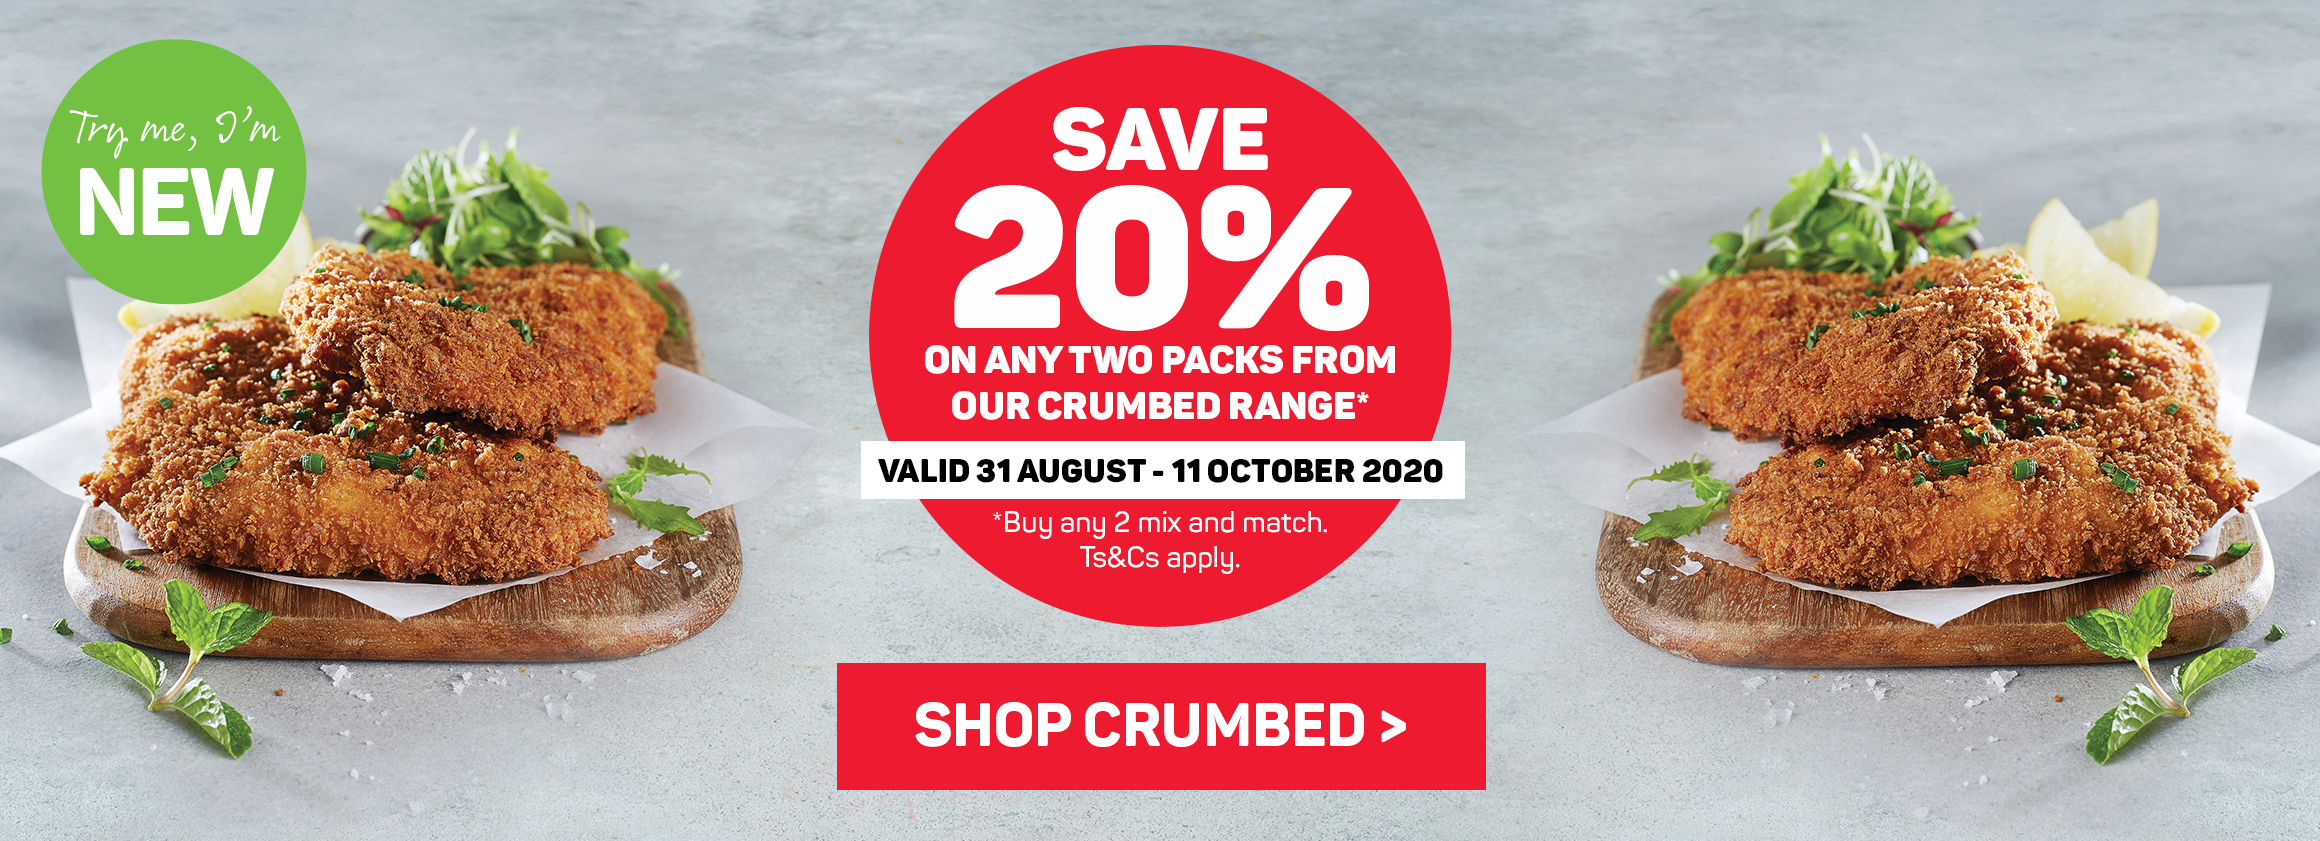 Save 20% on any two packs from our crumbed range. Shop crumbed